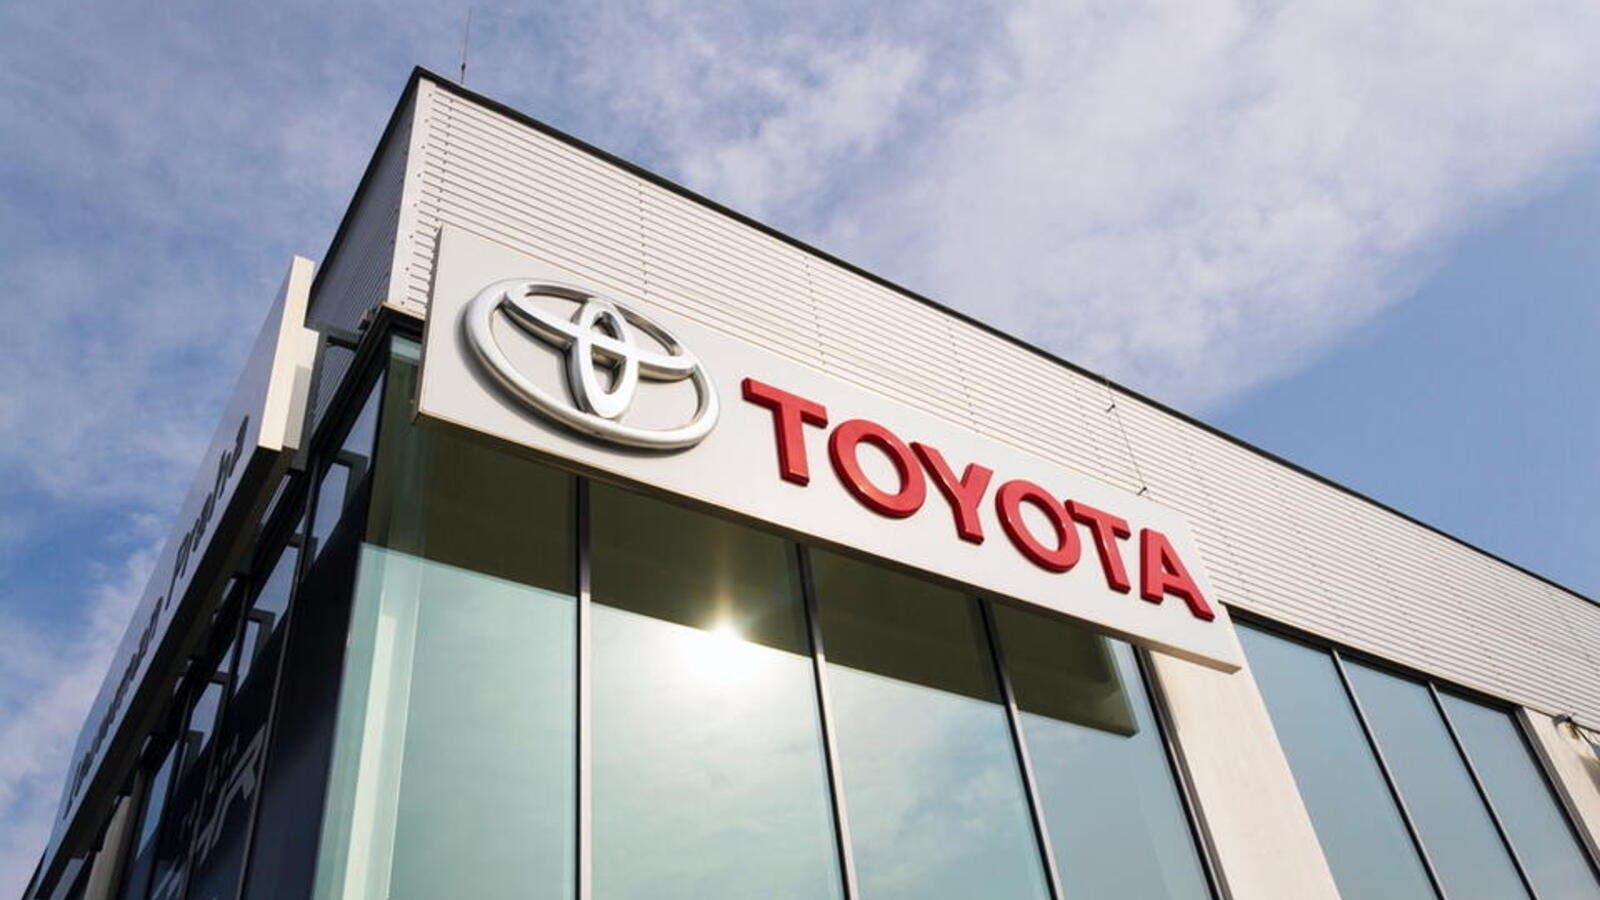 Toyota Recall 700,000 Vehicles: Which Models Are Affected?